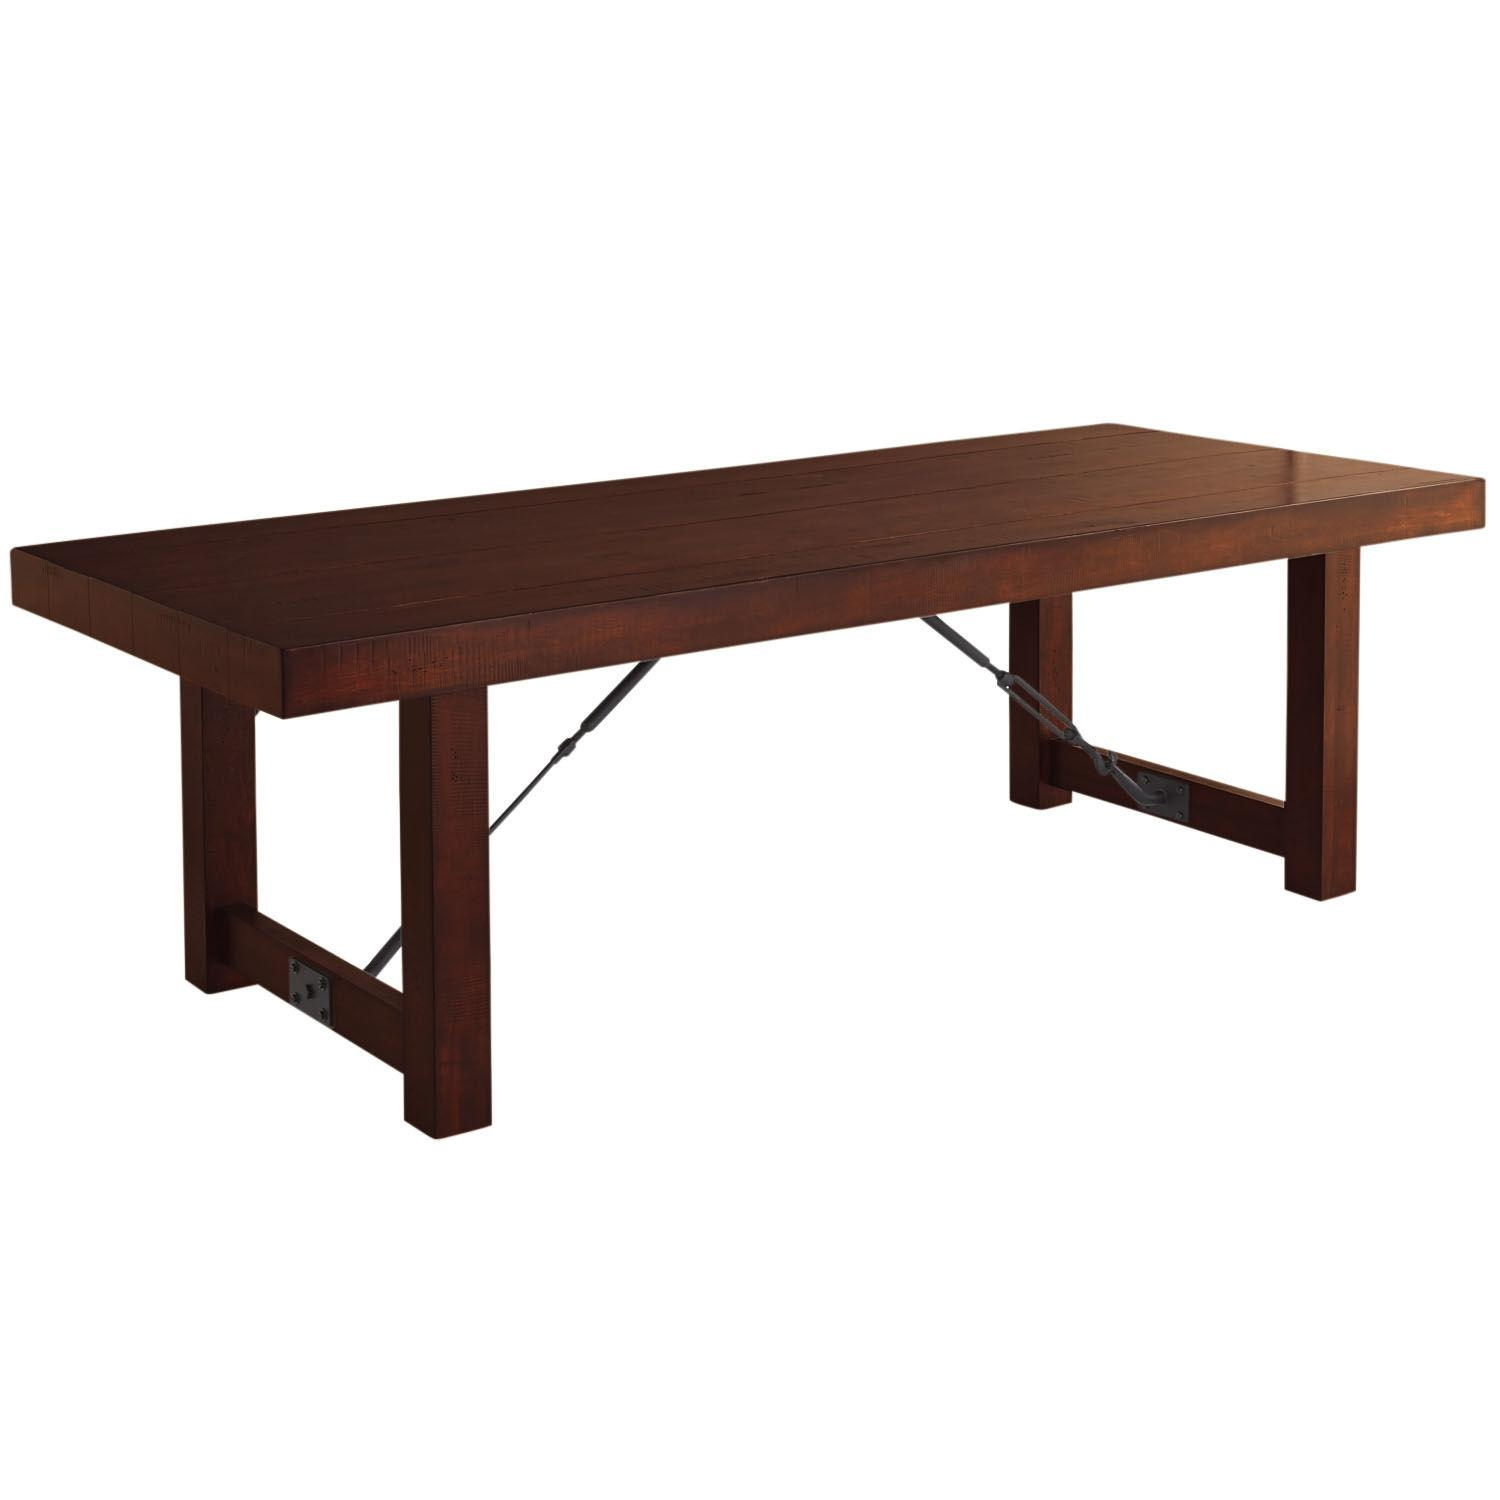 81 Exciting Pier One Sofa Table Home Design Red Side Tables Black With Pier 1 Sofa Beds (Image 11 of 20)